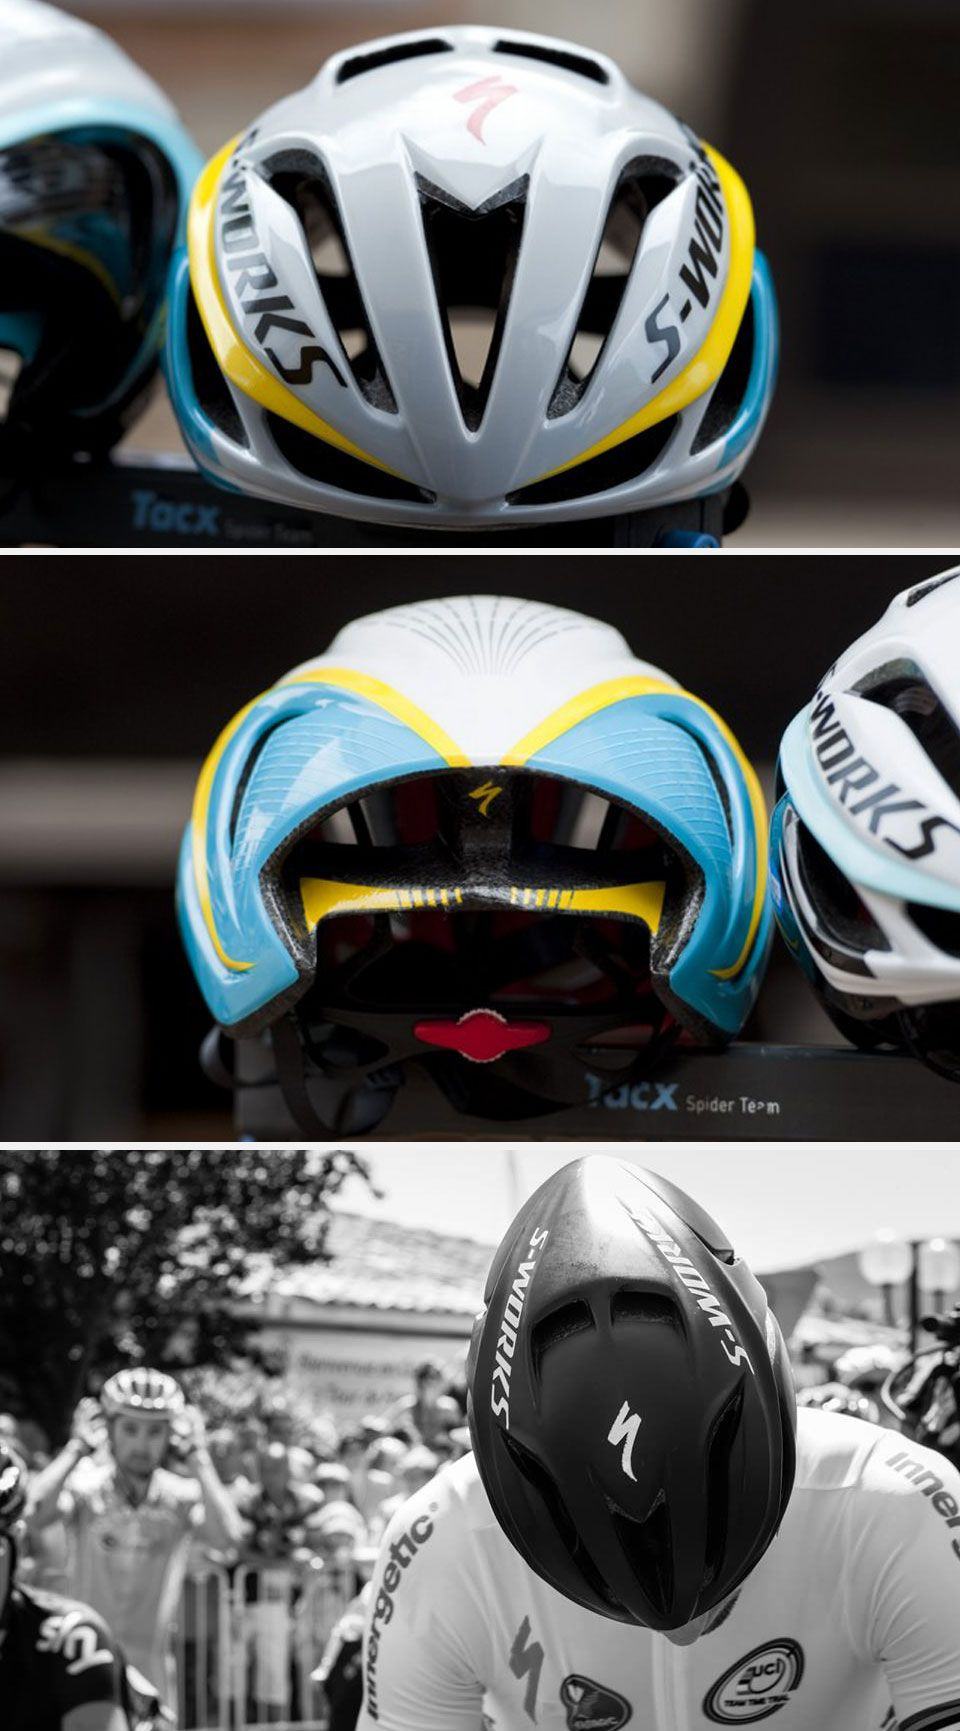 met sine thesis helmet 2011 Safe-t advanced usb led light included the sine thesis nightlights is the first bicycle helmet with luminescent material injected into the helmet.